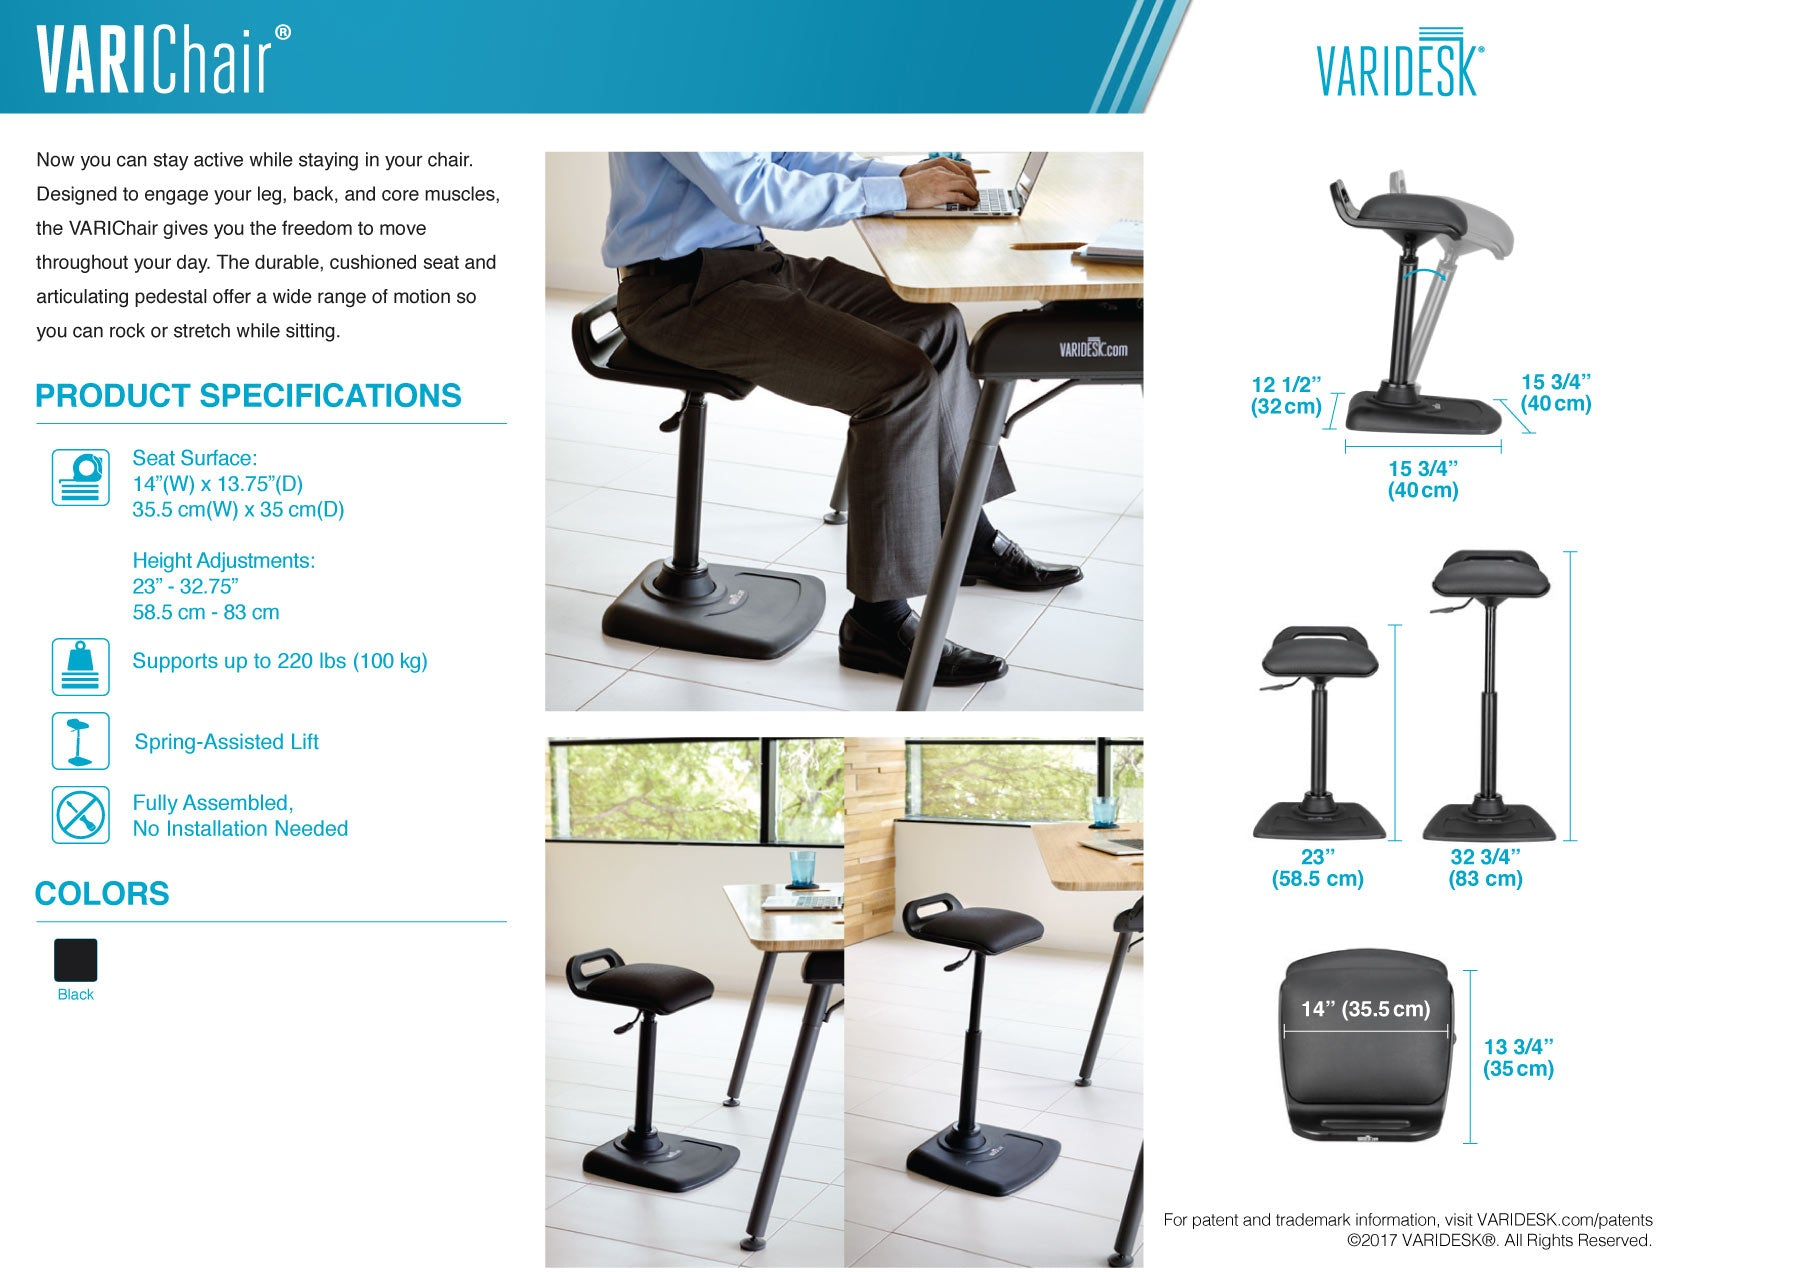 varidesk-wobble-stool-varichair